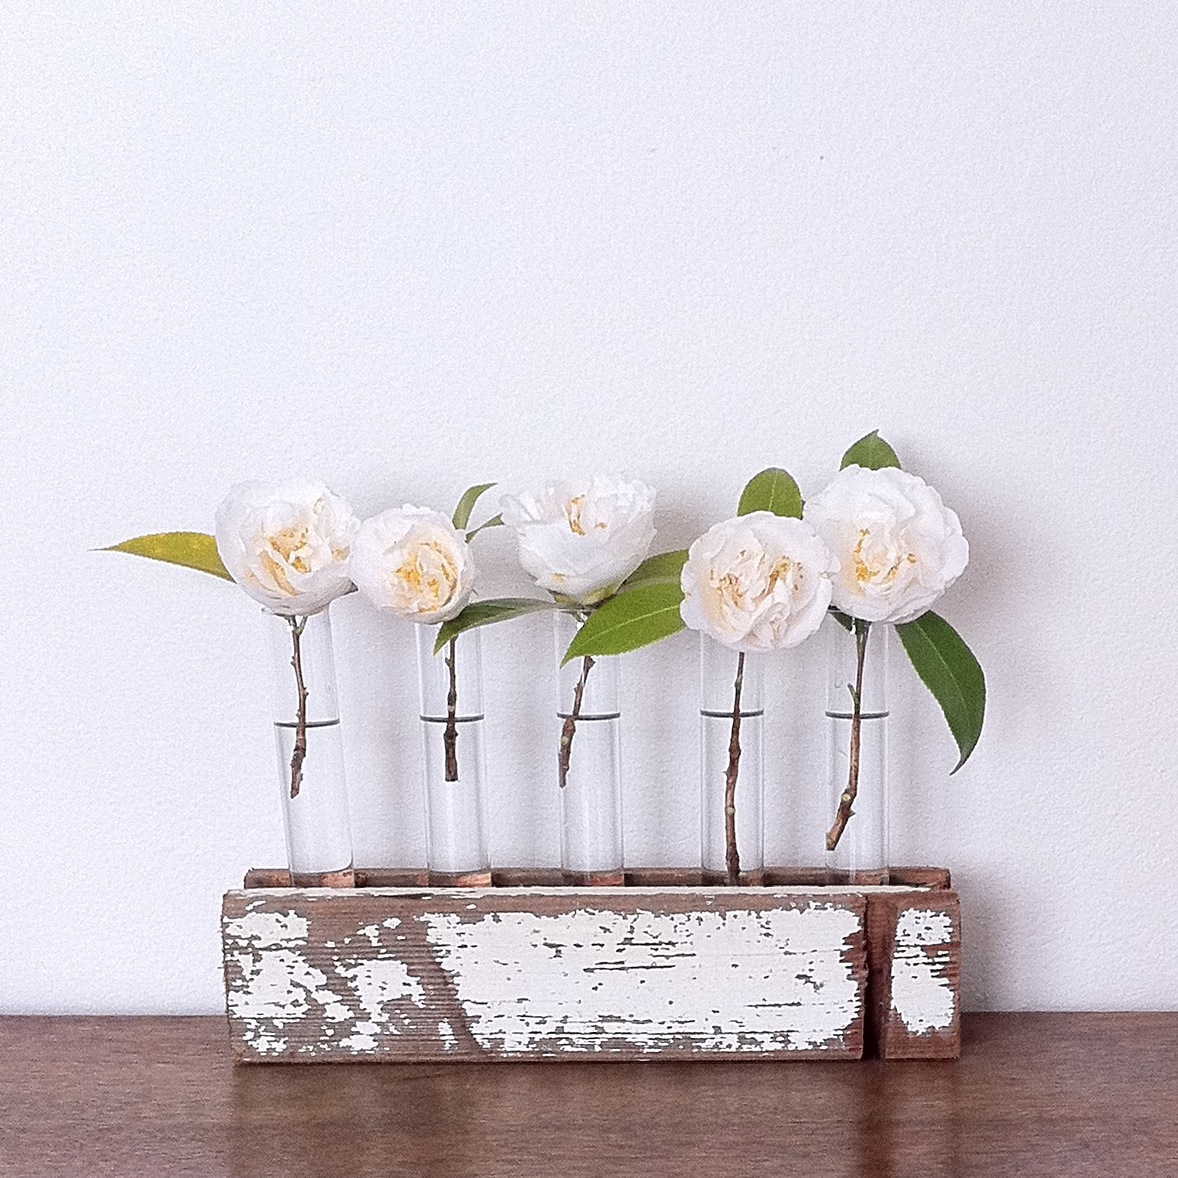 Test Tube Vase Home Decor